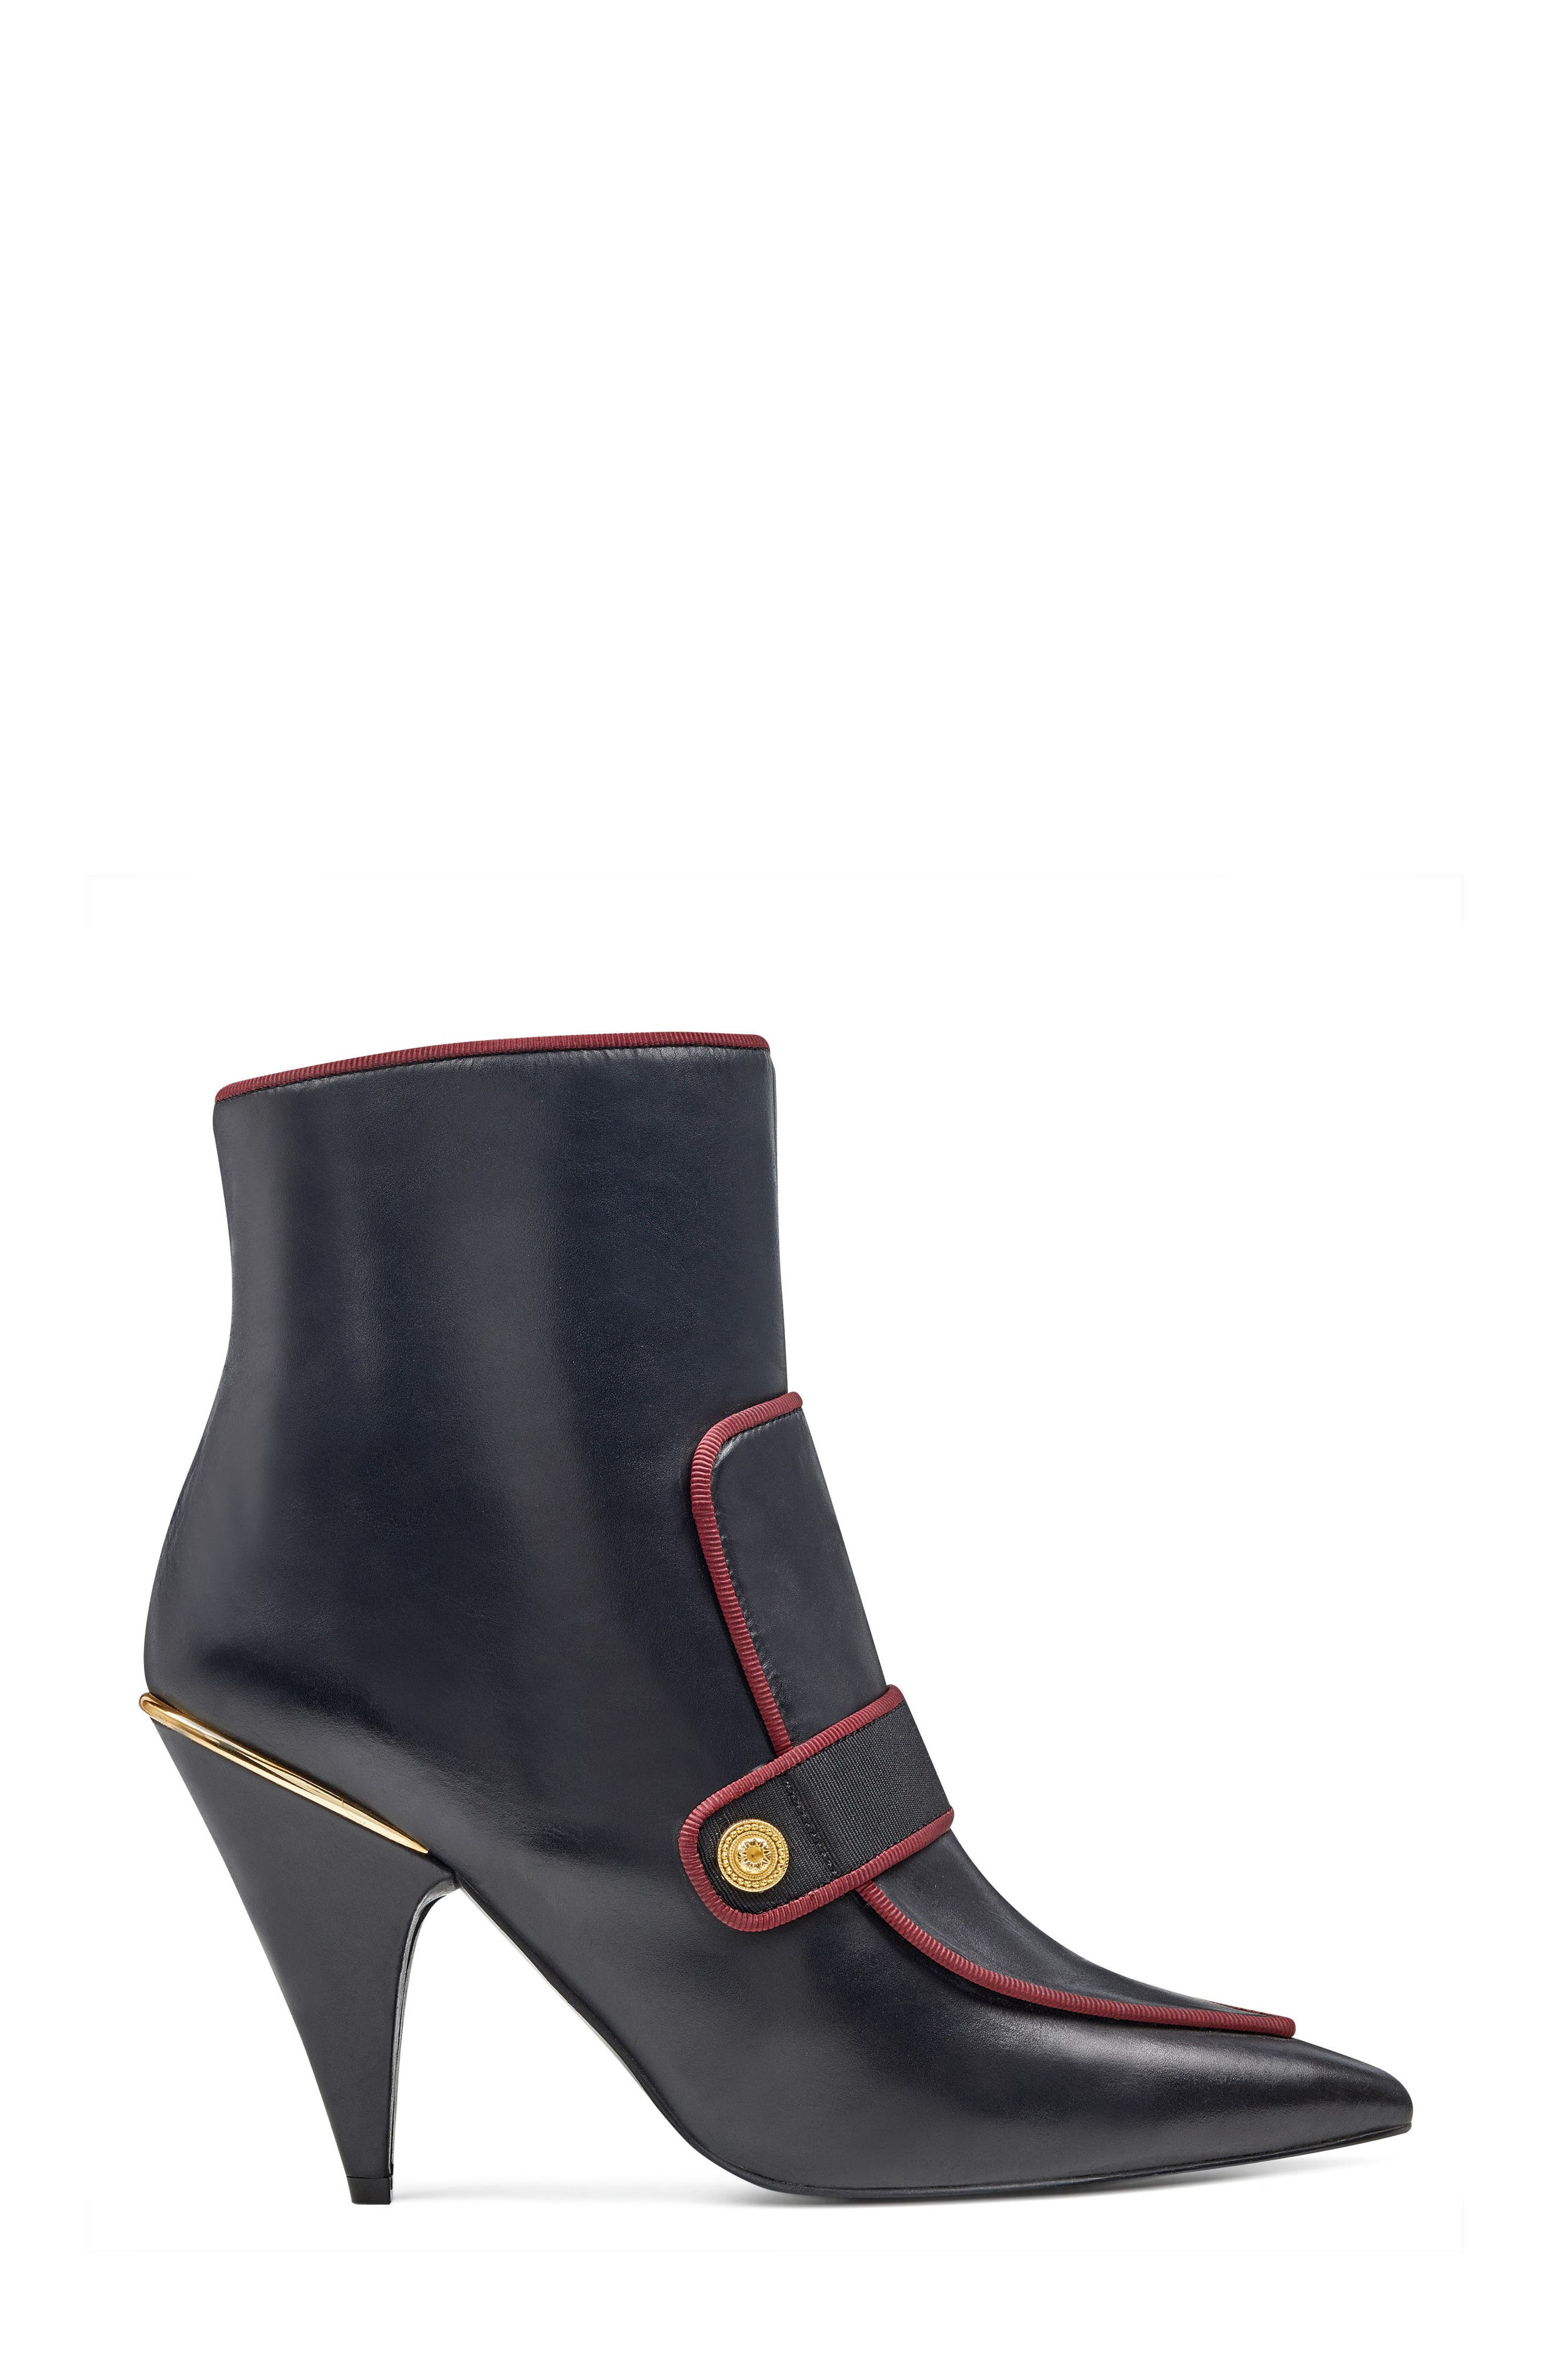 Westham Pointy Toe Bootie,                             Alternate thumbnail 3, color,                             Black/ Wine Leather